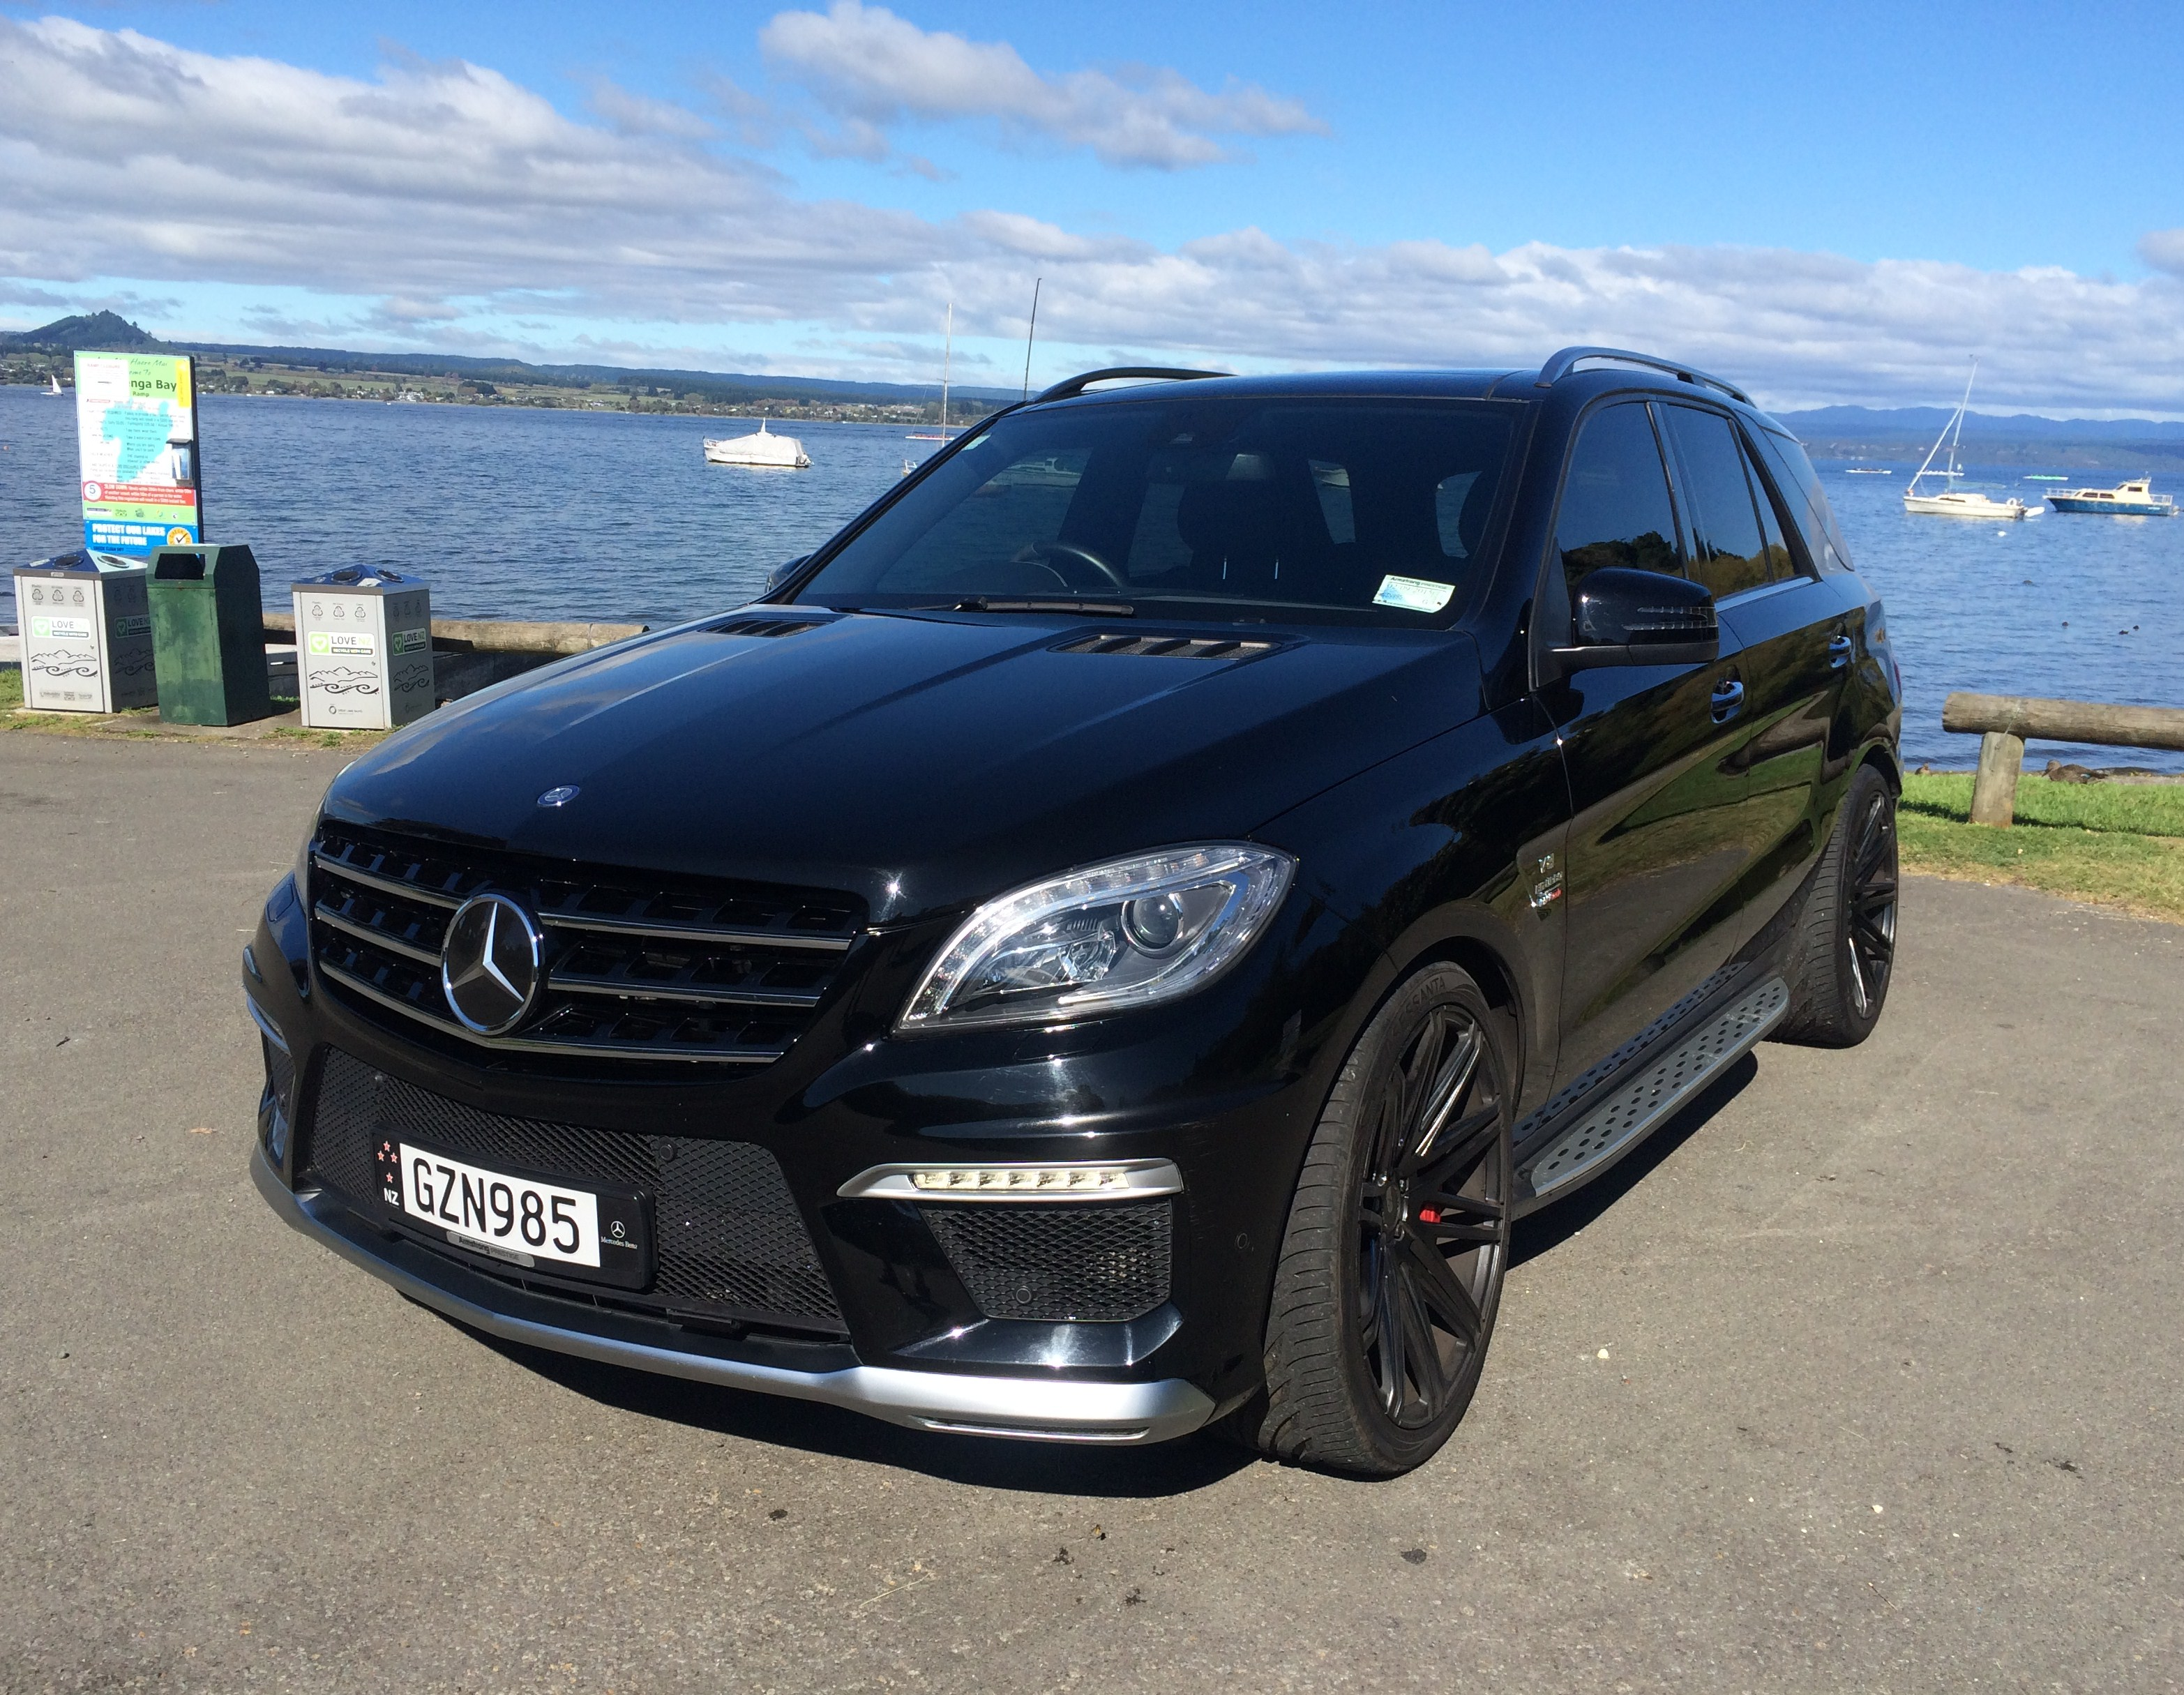 mercedes ml63 amg w166 renntech mercedes performance upgrade by power torque ltd taupo new. Black Bedroom Furniture Sets. Home Design Ideas